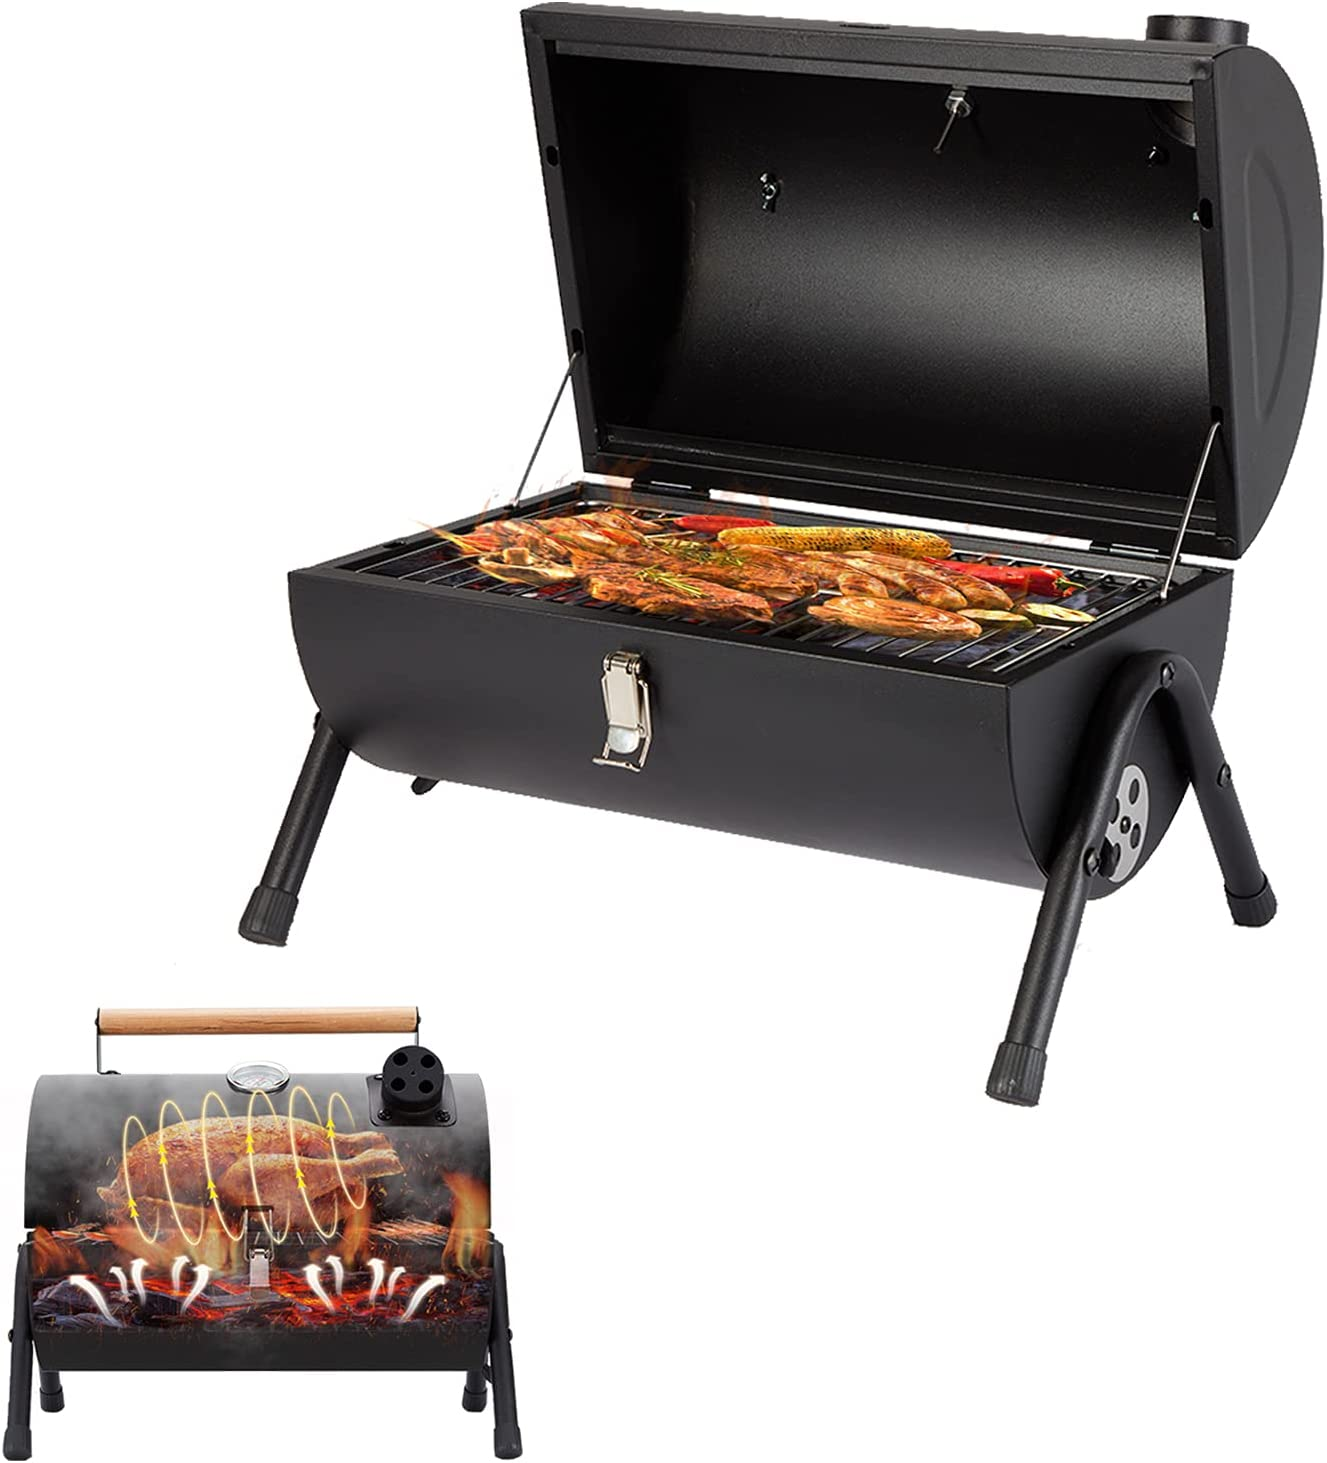 COOLNIC gift Mini Charcoal Grill Folding Ou with Portable Max 78% OFF Smoke